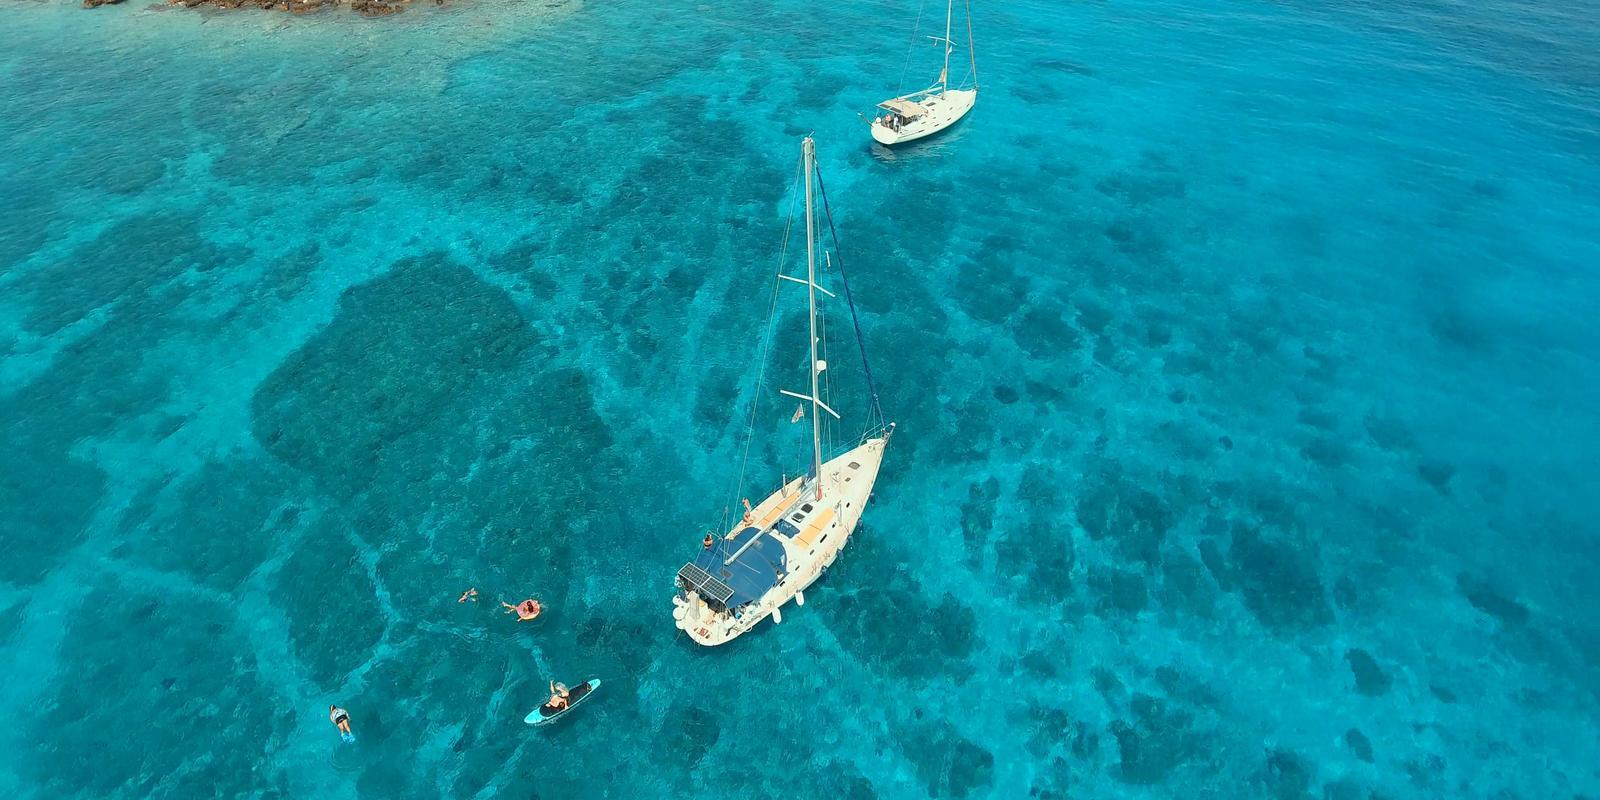 4 day sailing adventure! Max 6 guests in 8 berths.This year travel in comfort & avoid the crowds